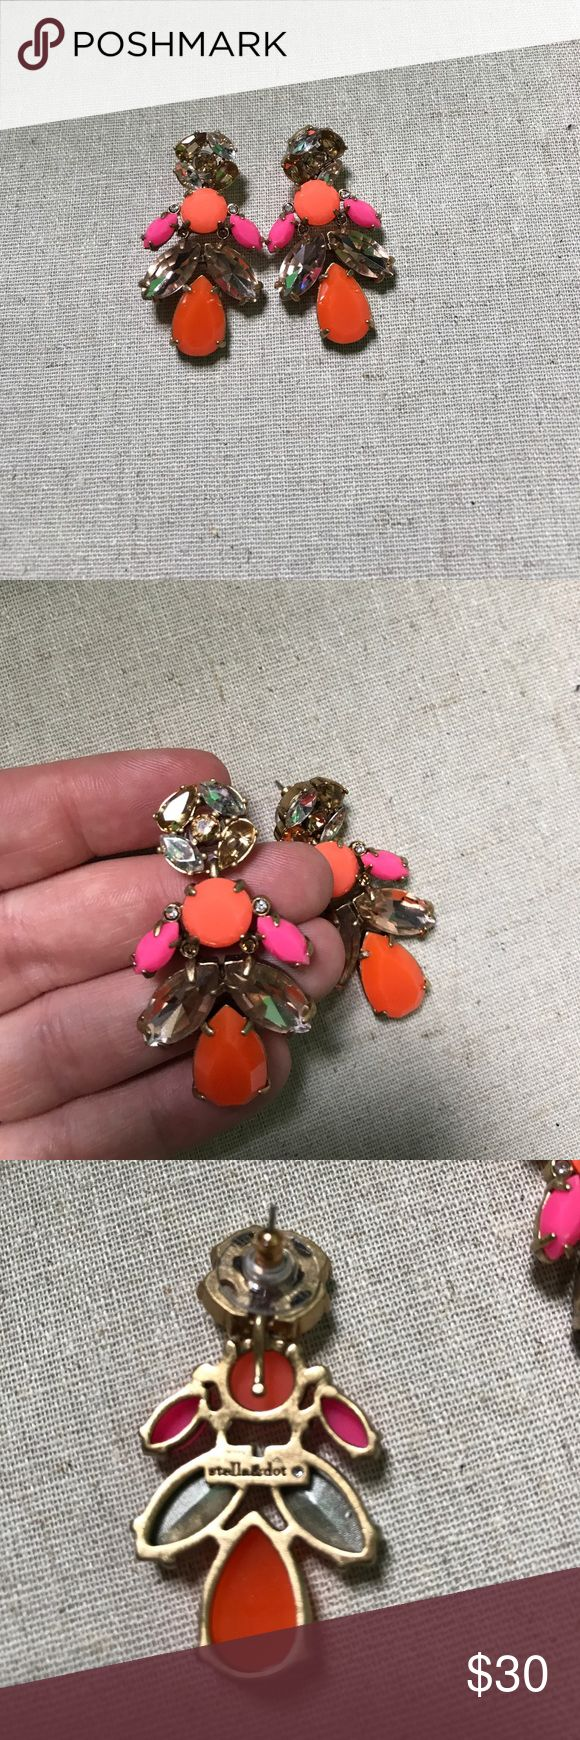 New Stella and dot earrings New Stella and dot earrings. Beautiful pink and orange with sparkly accents. No longer available on website!! Stella & Dot Jewelry Earrings